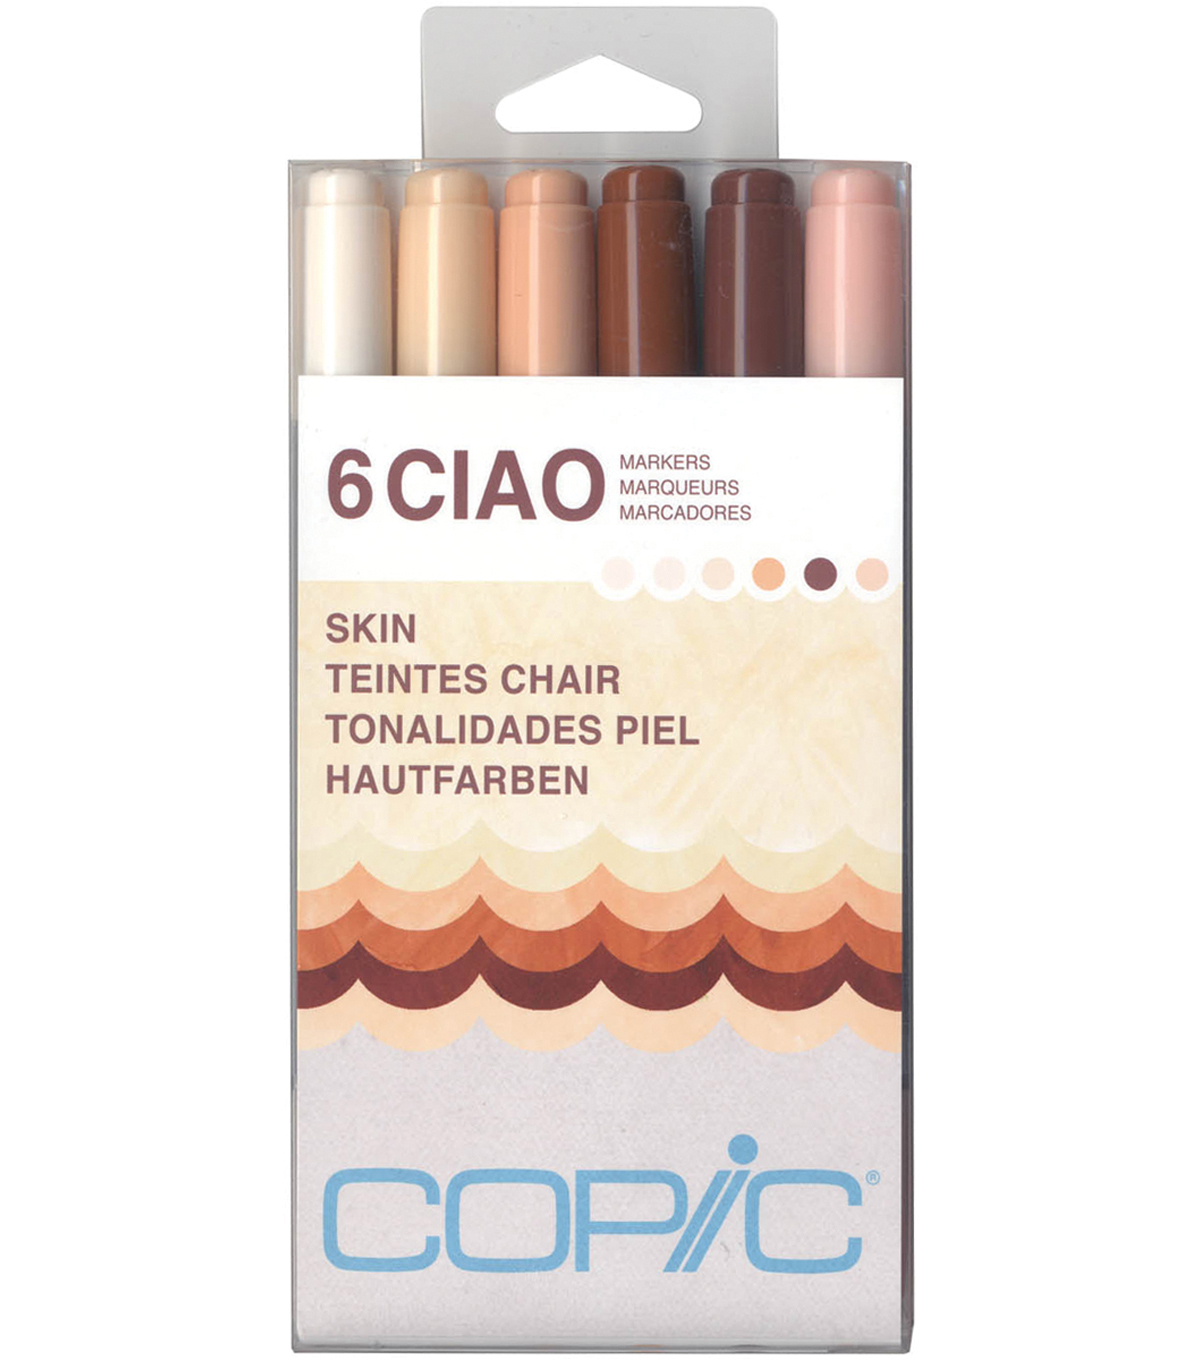 Copic Ciao Markers-Skin